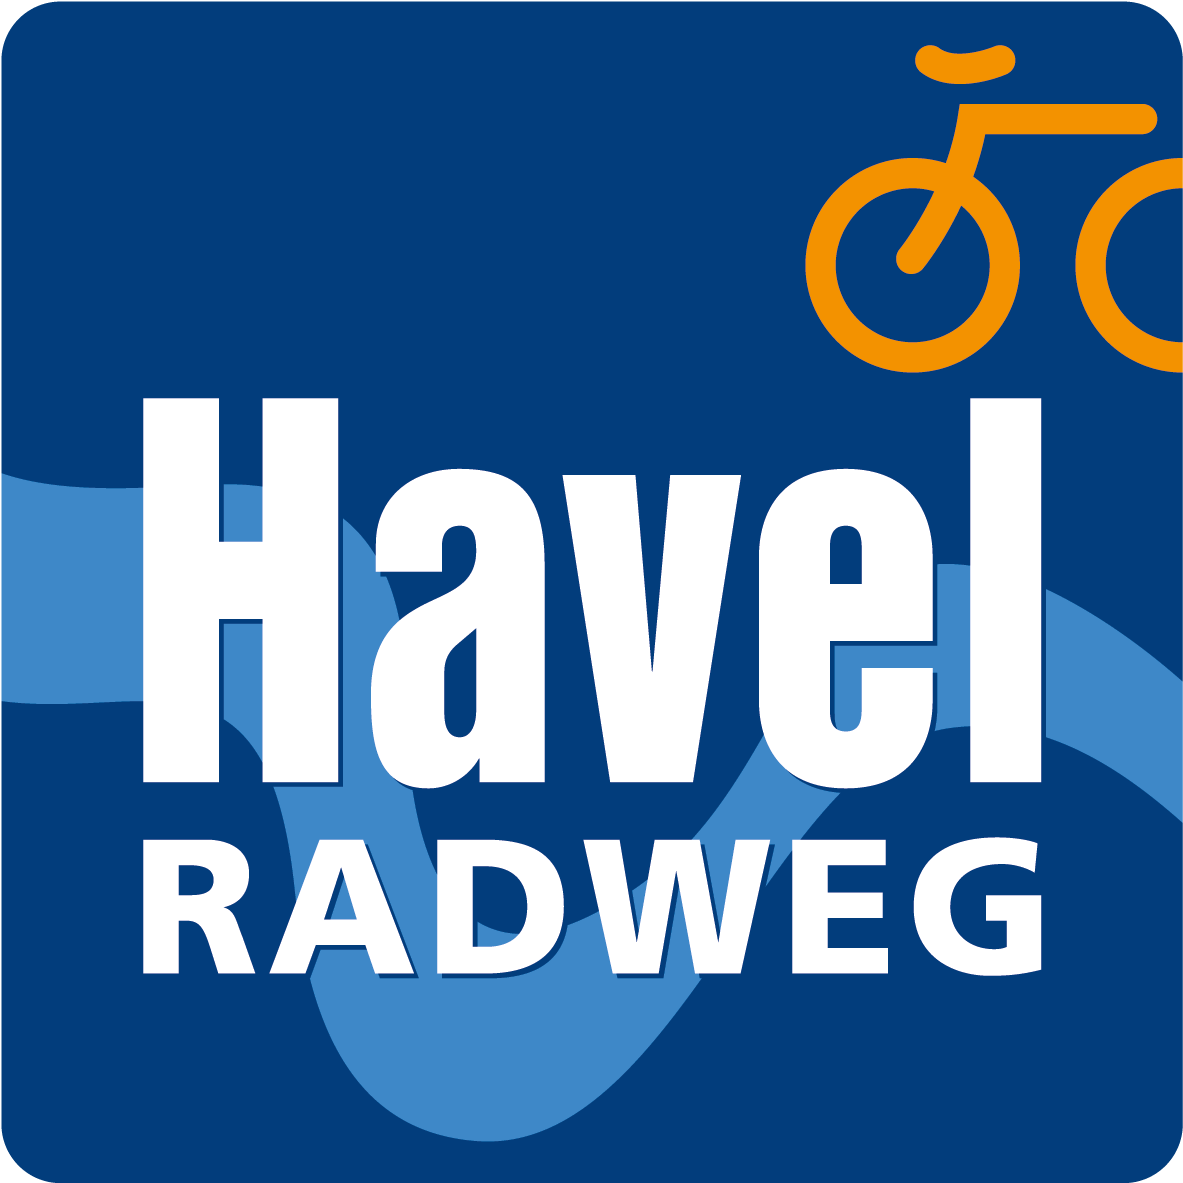 havel_radweg__1183x1183.png